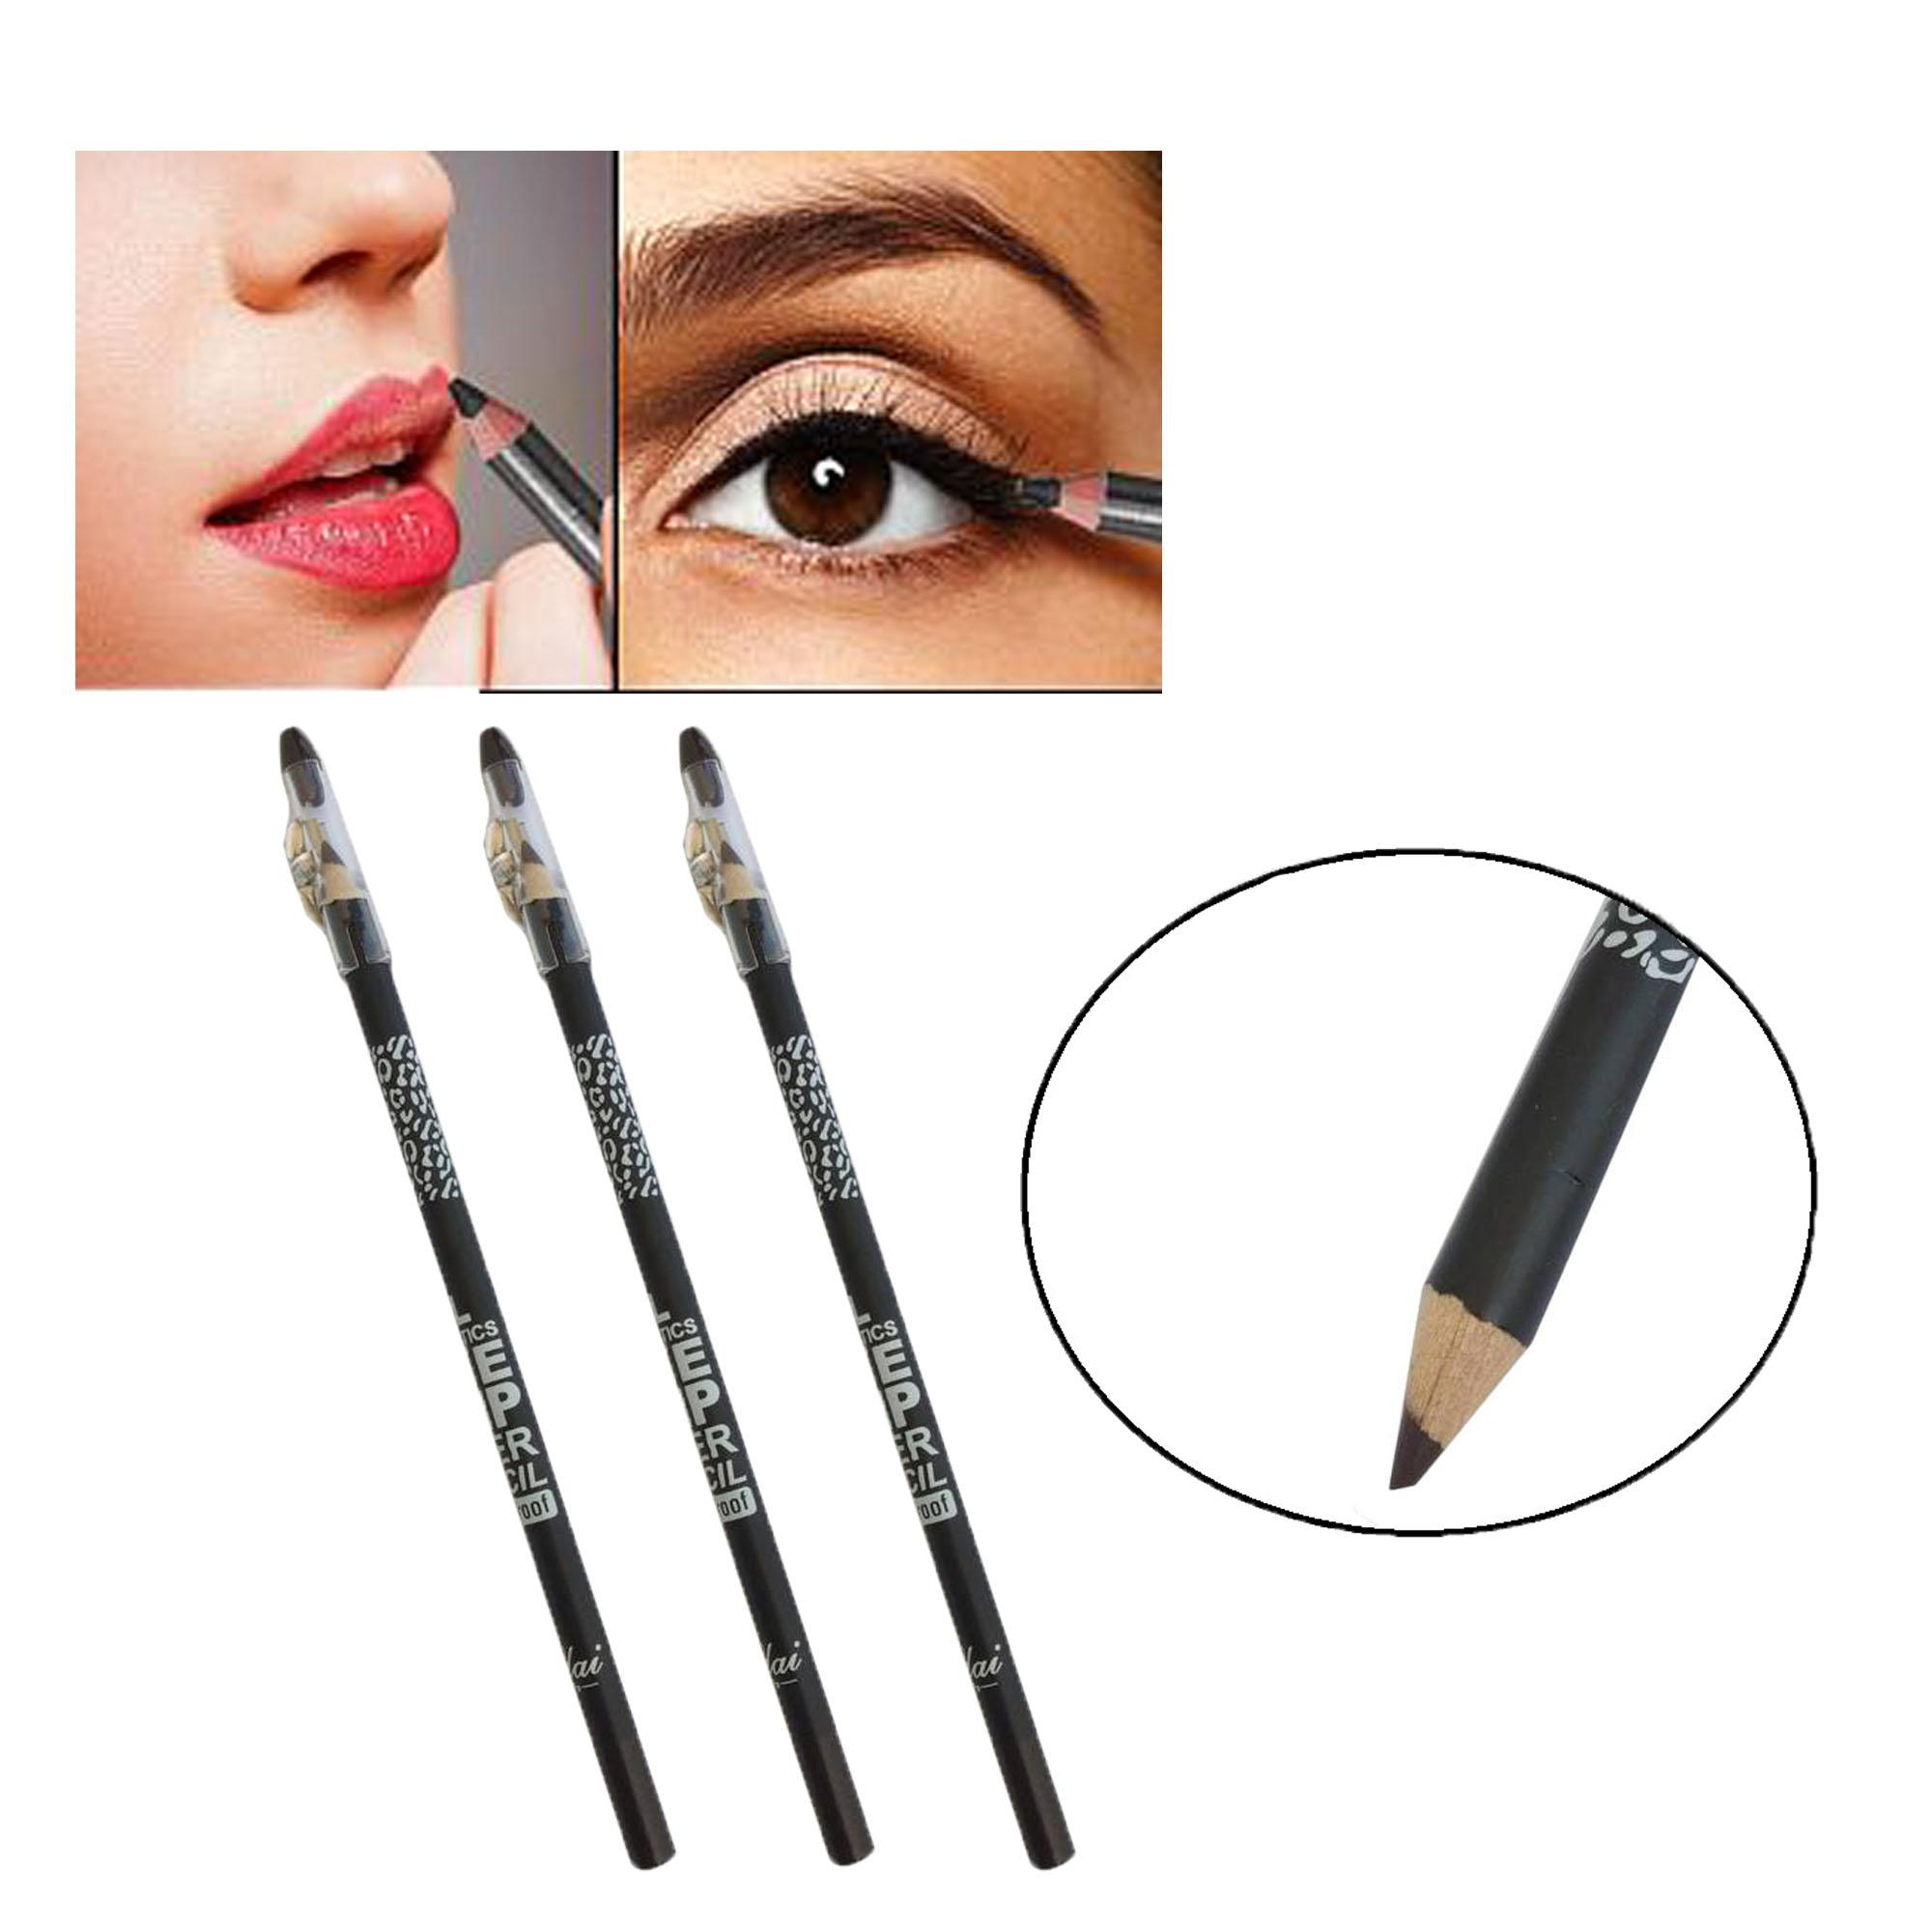 PHSUPERMALL 3 Pcs. MILAI Perfect Waterproof Lip & Eye Liner Pencil with SharpenerEye Makeup (Dark Brown) 21g Philippines